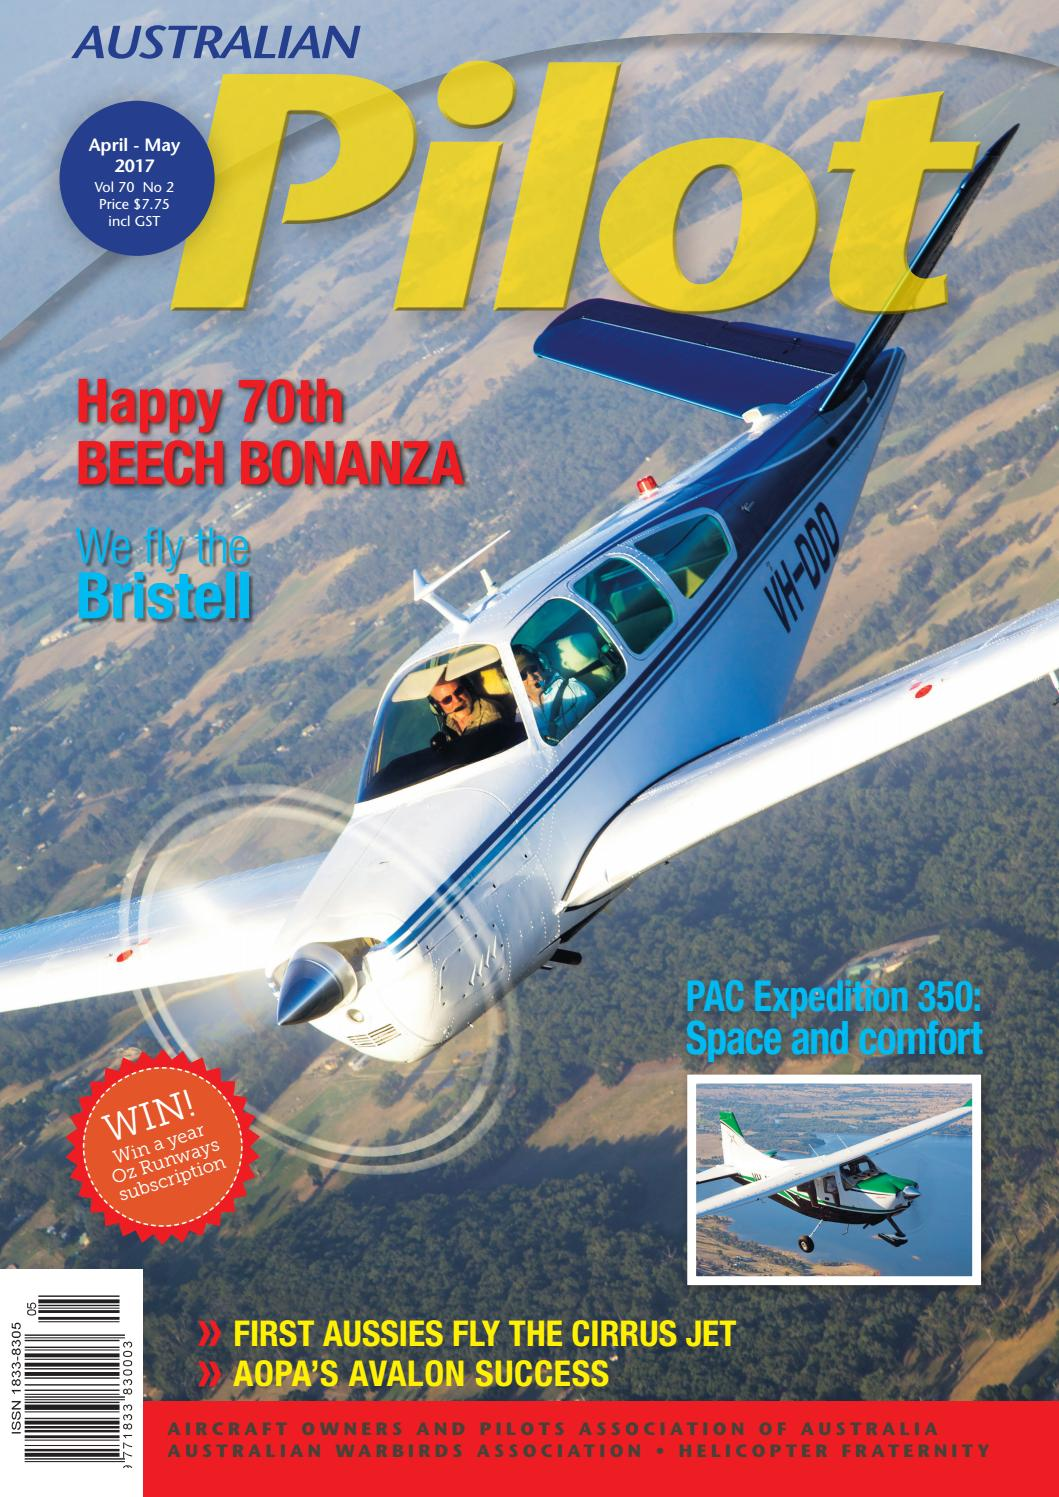 Australian PILOT Magazine Apr-May 2017 by AOPA Australia - issuu